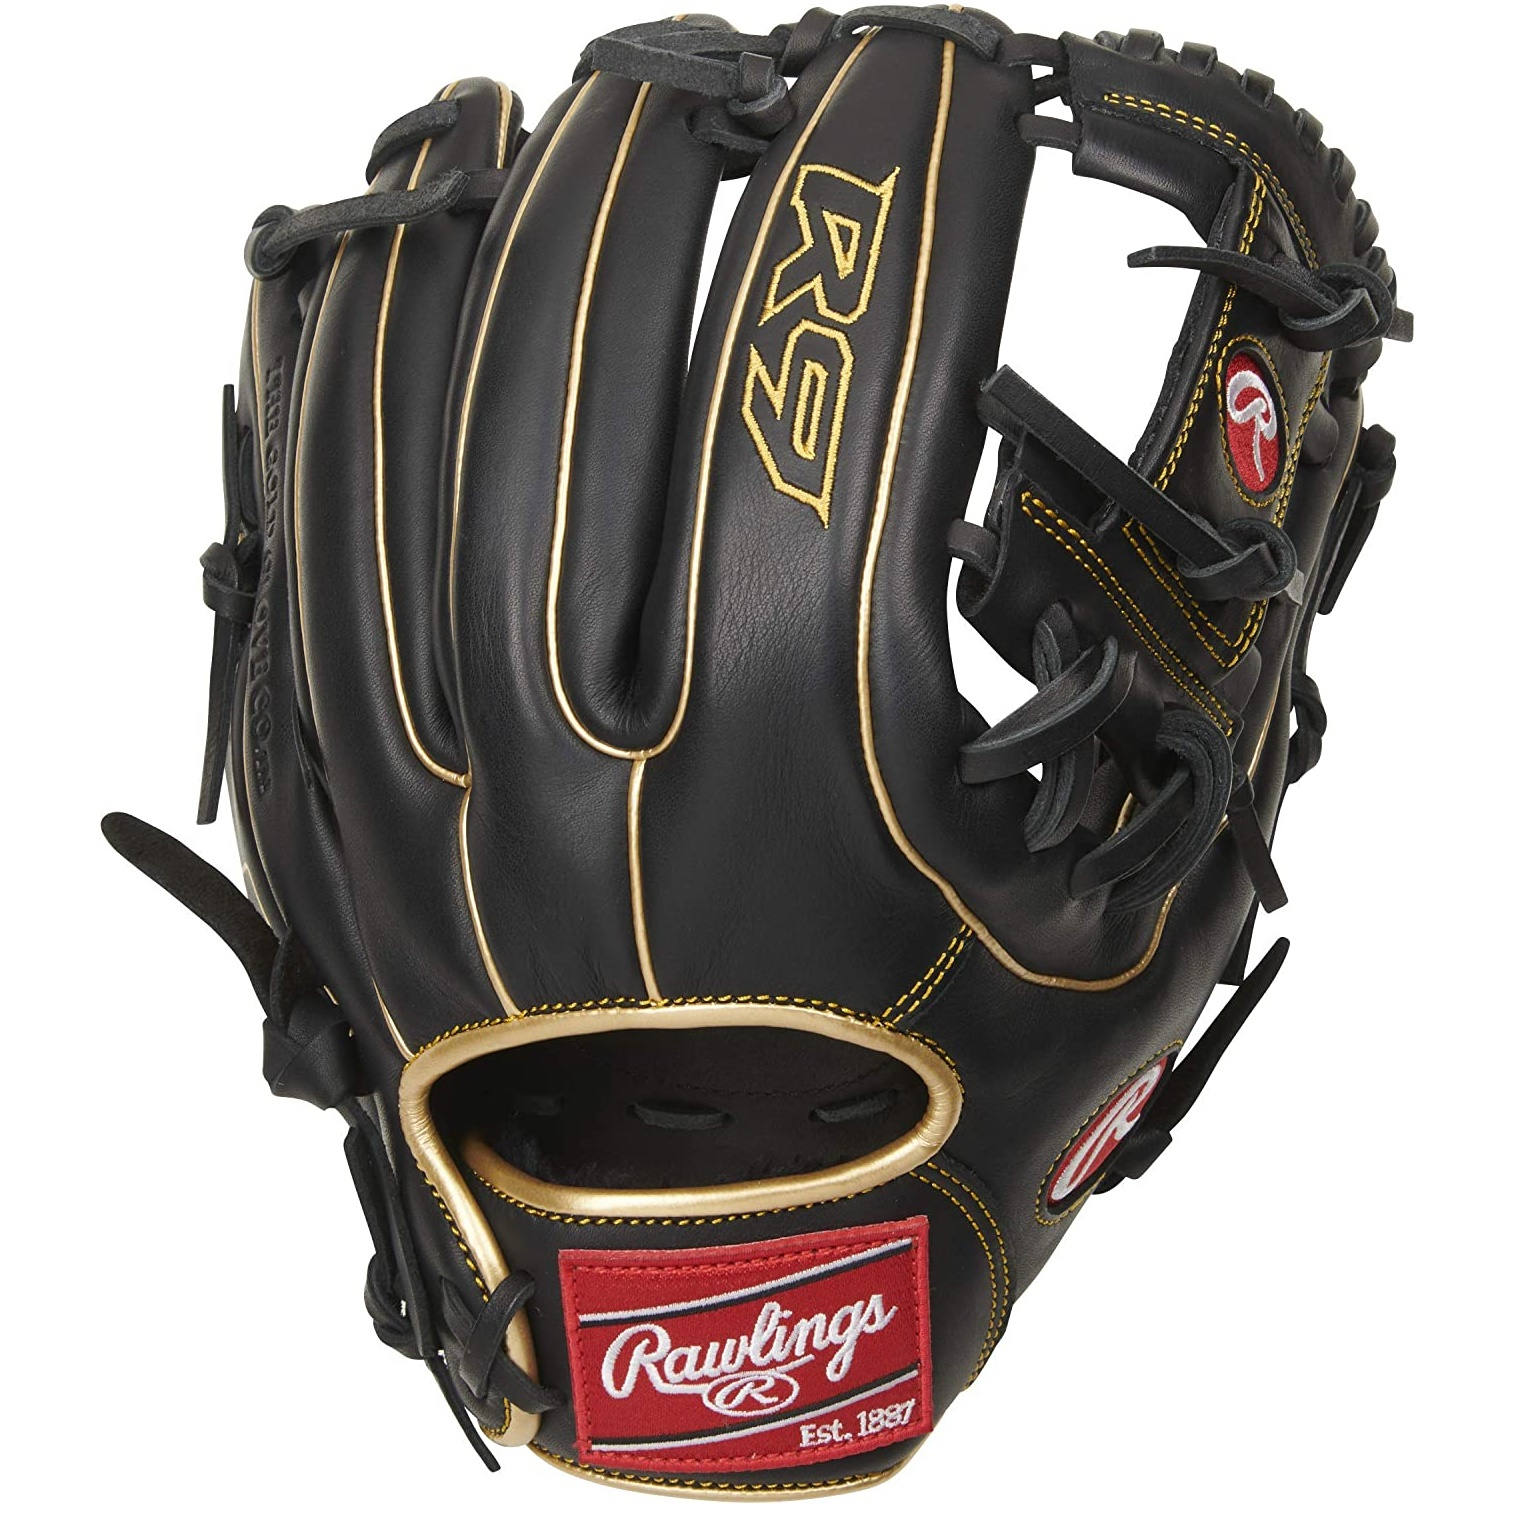 rawlings-r9-baseball-glove-11-5-i-web-right-hand-throw R9314-2BG-RightHandThrow  083321716485 Designed for infield players the r9 baseball glove has an 80%